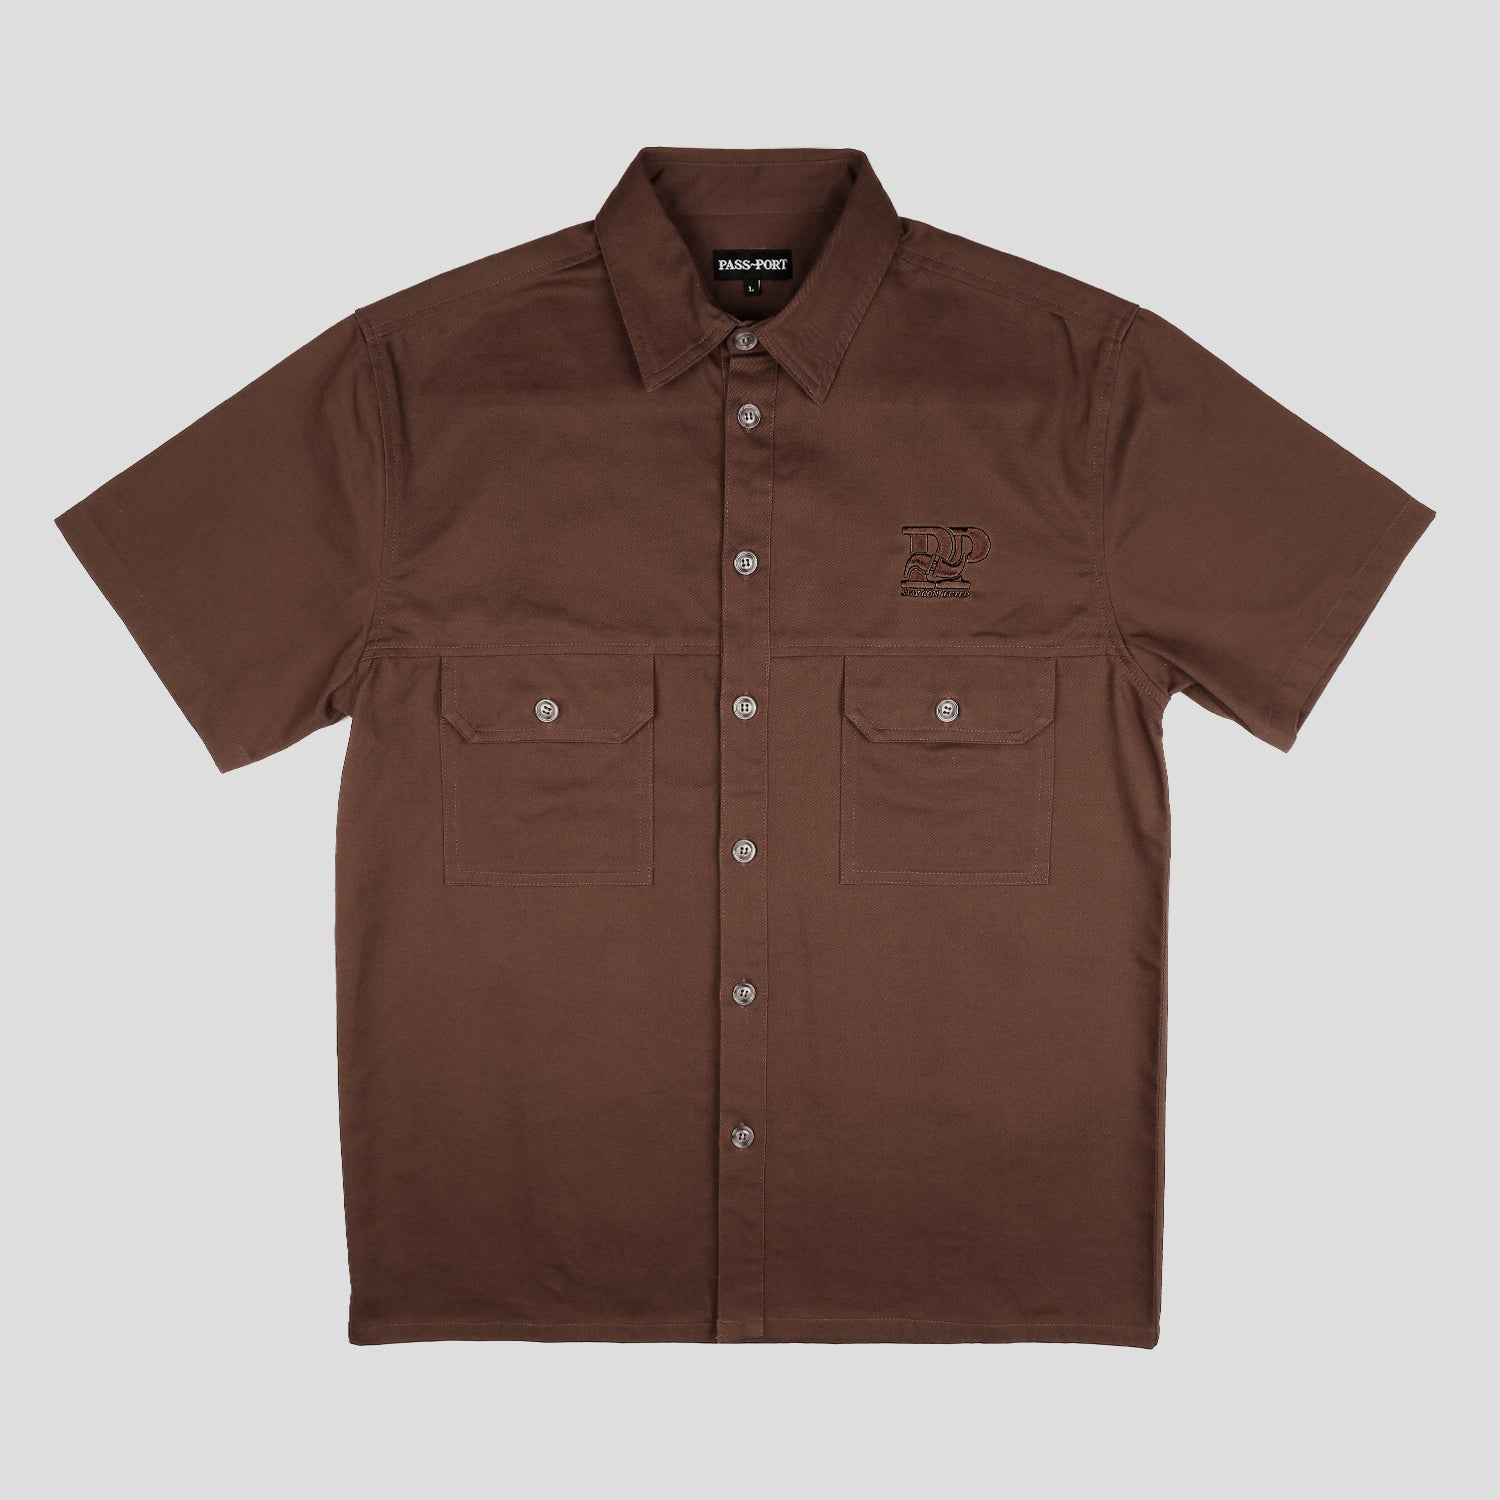 "PASS~PORT ""STAY CONNECTED"" SPARKY S/S SHIRT CHOCOLATE"